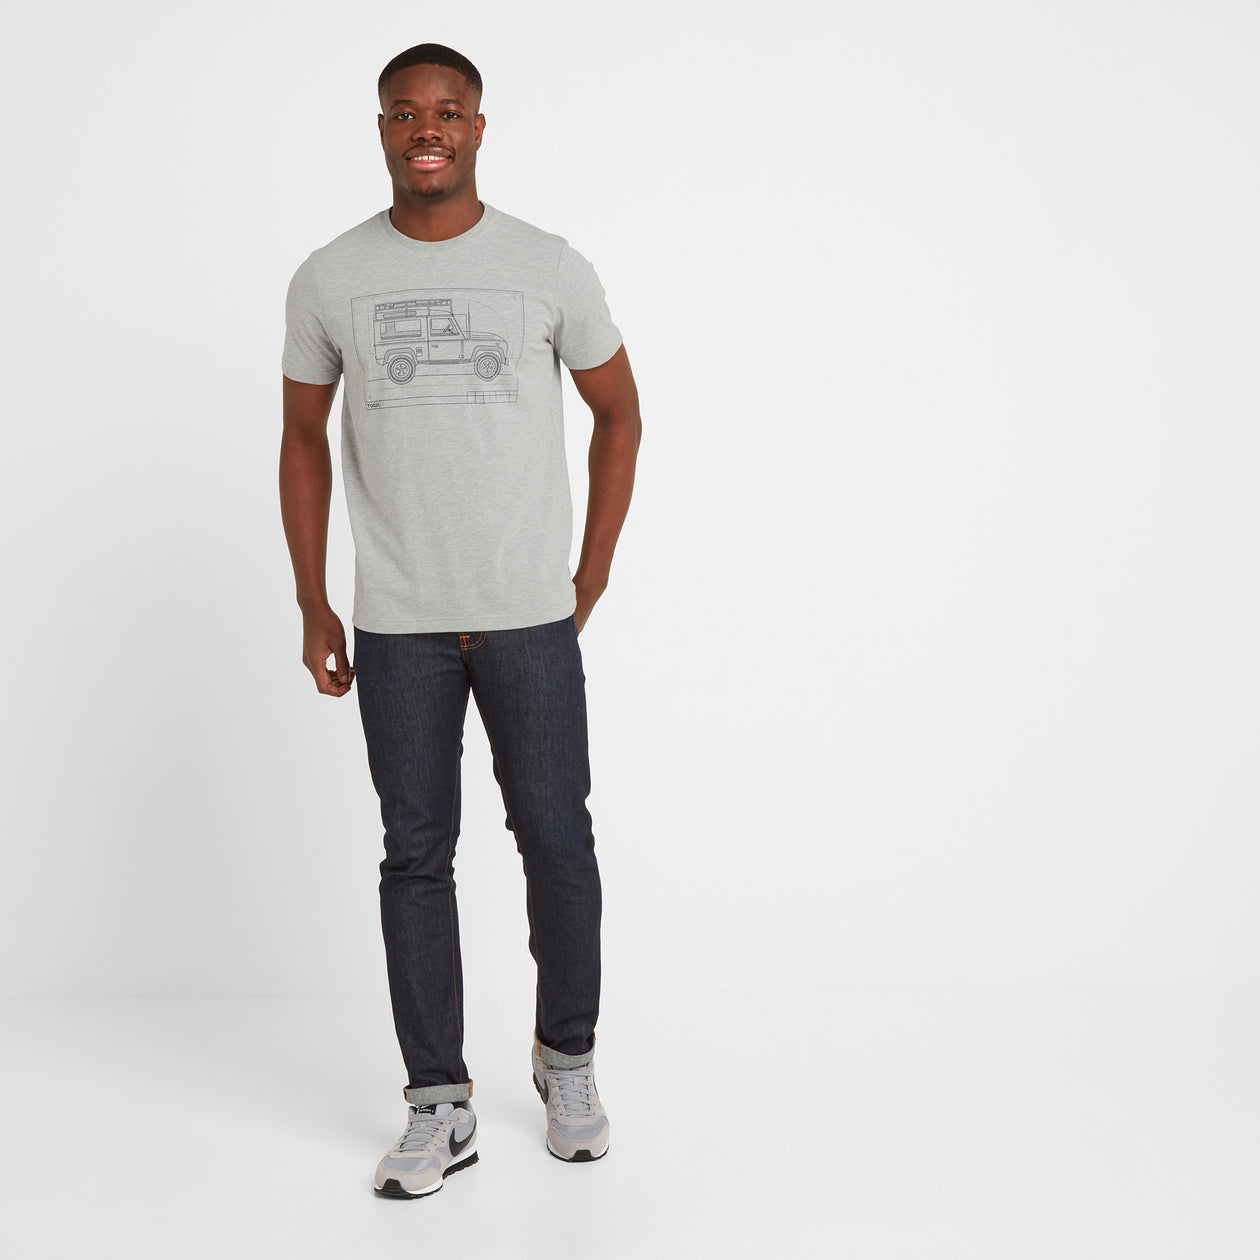 Davenport Mens T-Shirt 4x4 - Light Grey Marl image 4